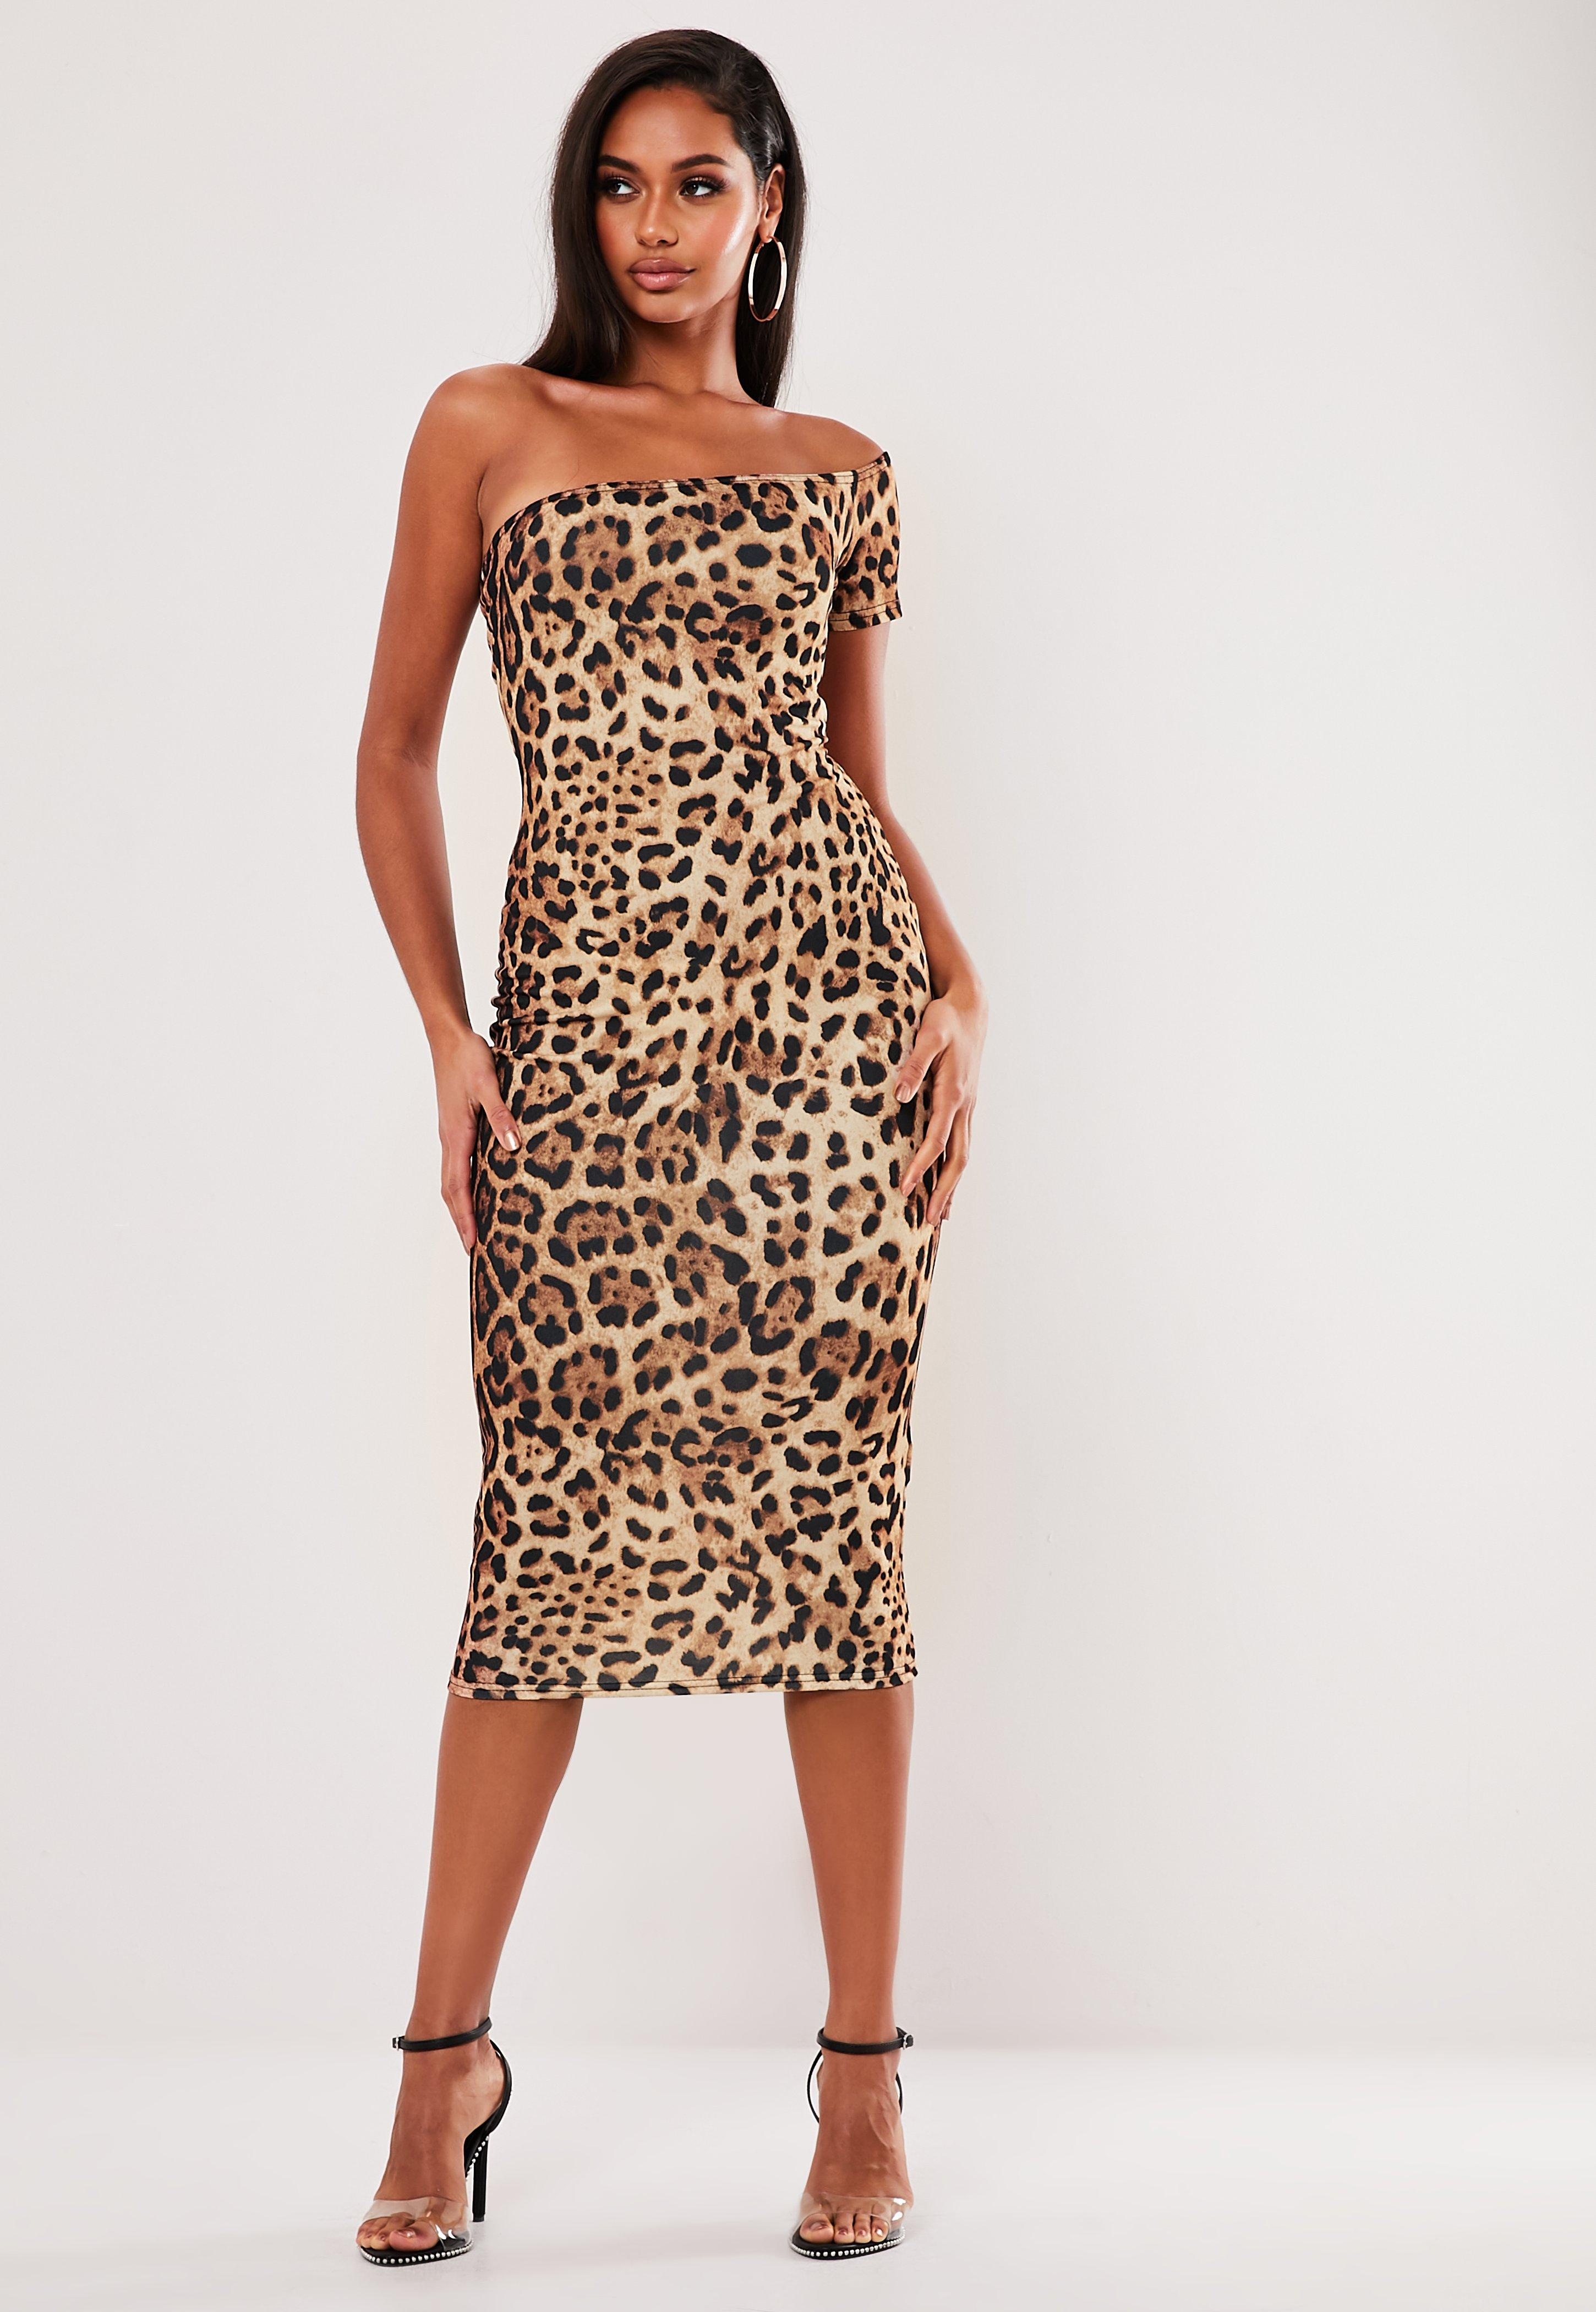 reasonably priced popular design largest selection of 2019 Brown Leopard Print One Shoulder Midaxi Dress